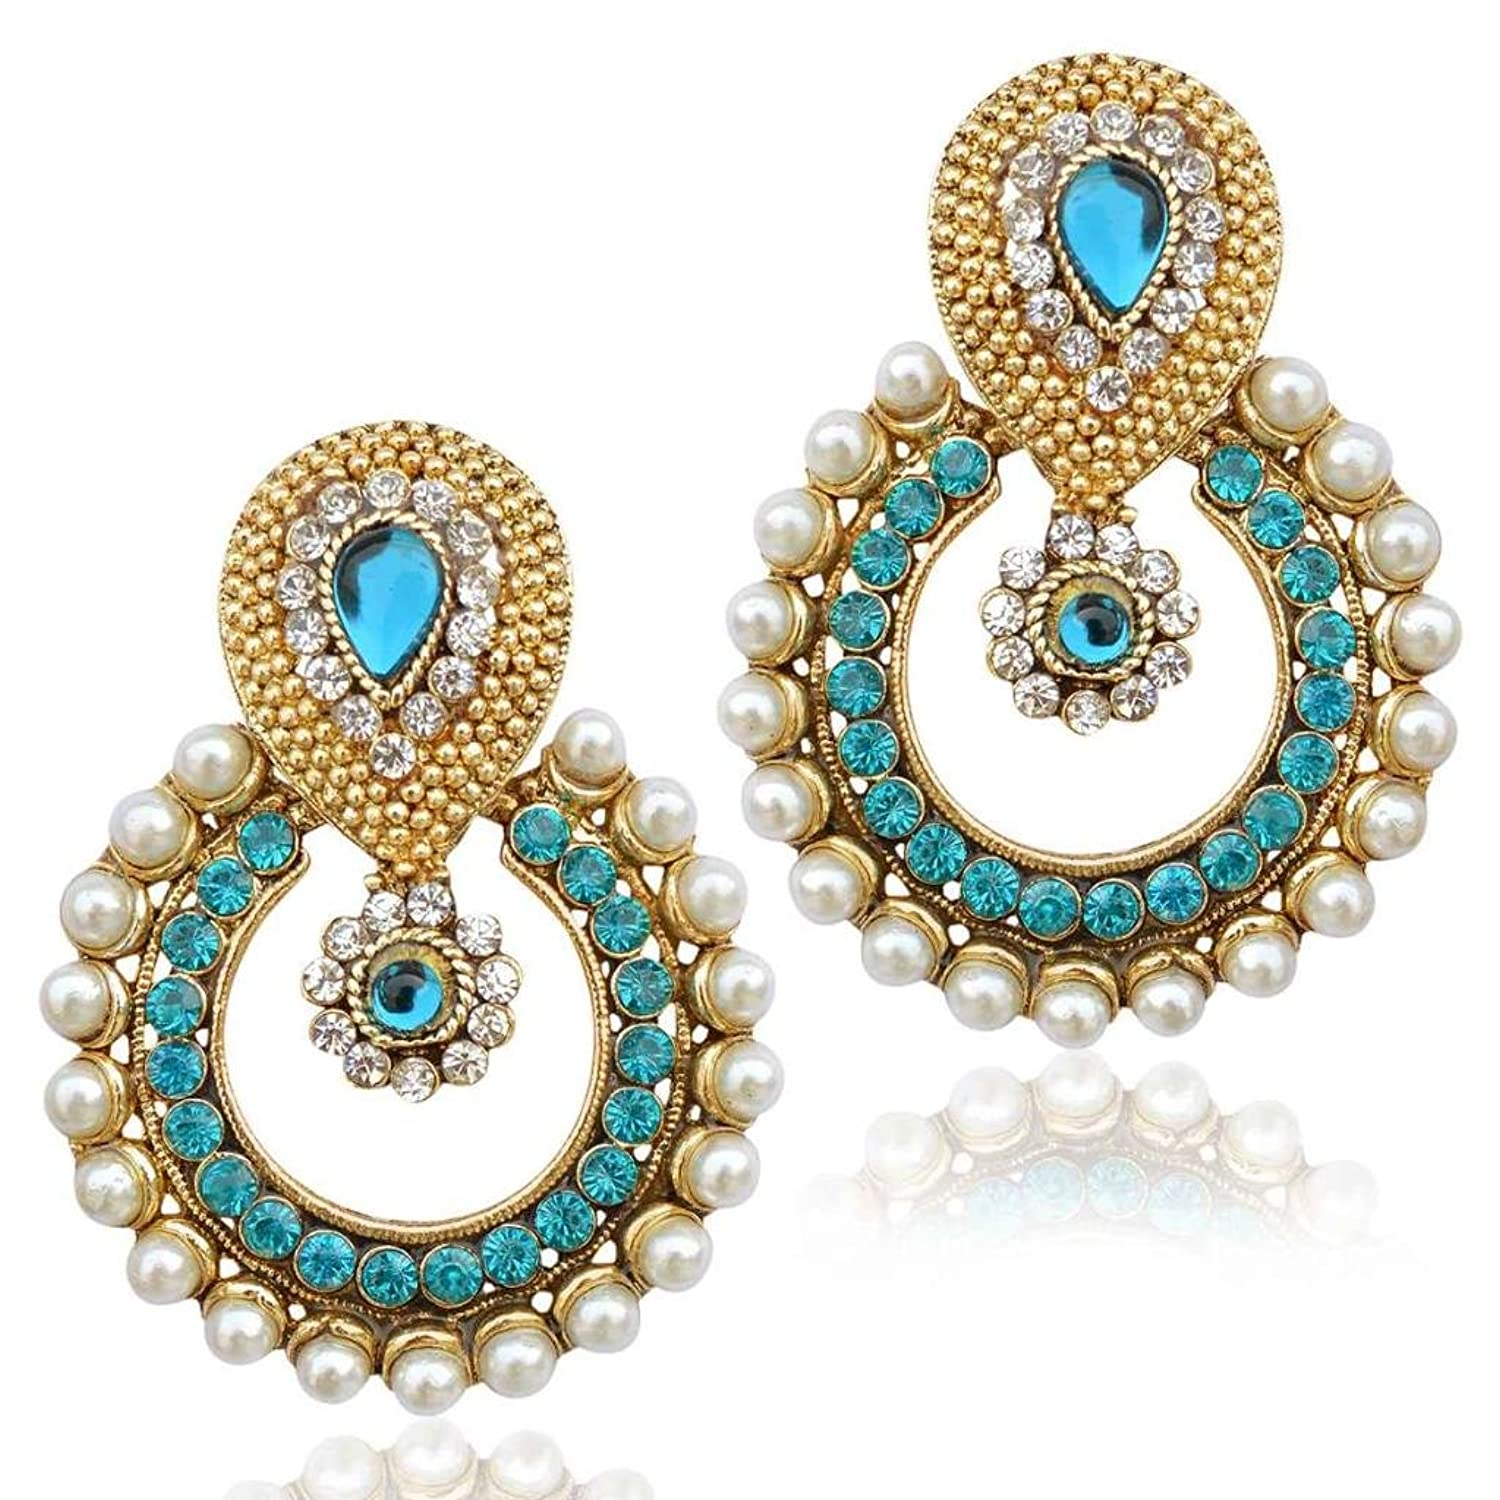 Amazon.com: Firozi earrings bridal jewellery sets earrings Indian ...